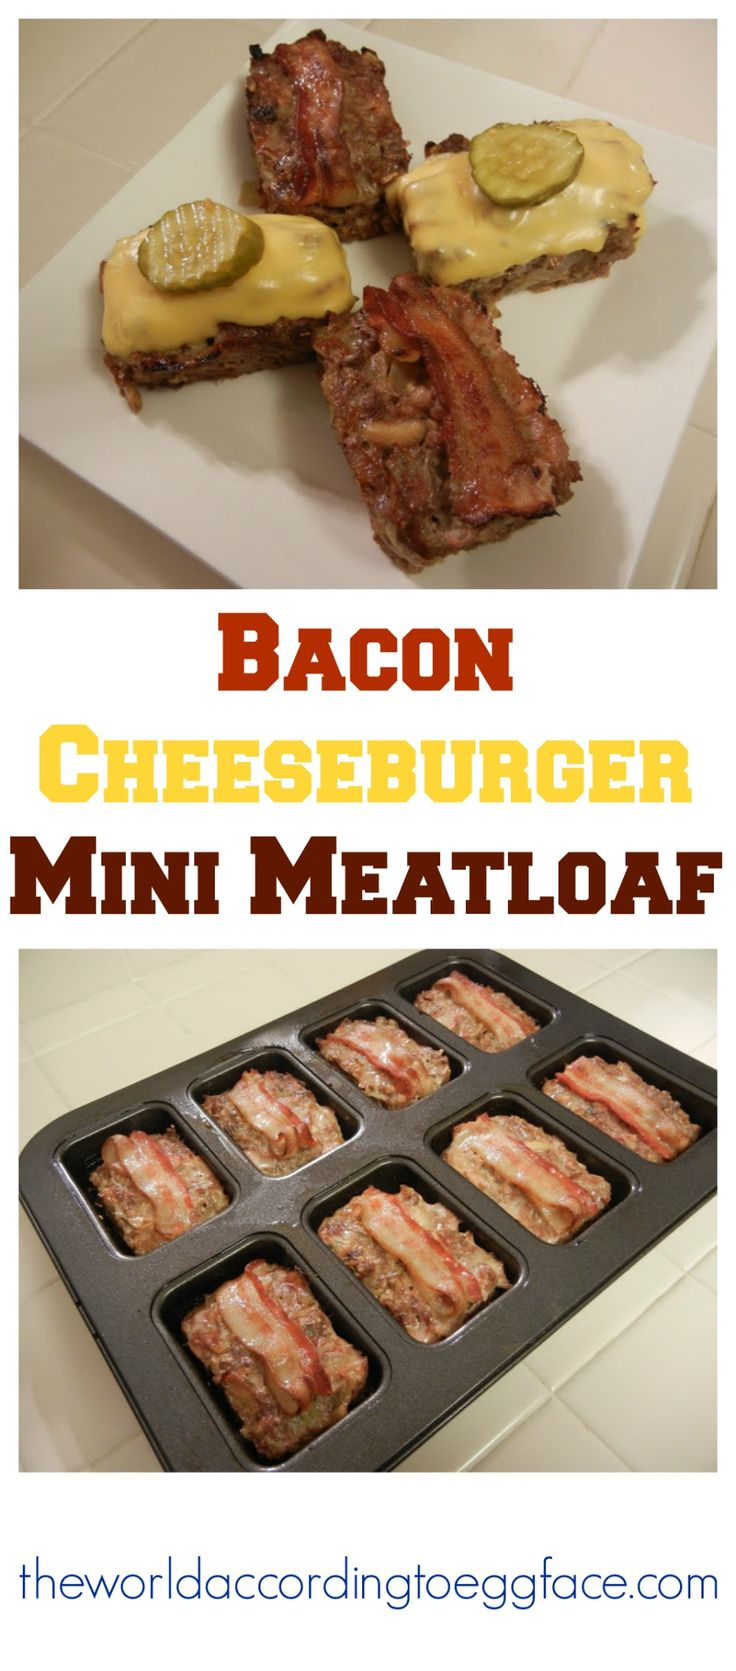 Bacon Cheeseburger Mini Meatloaves Meatloaf - Low Carb High Protein Weight Loss Surgery Friendly Recipes